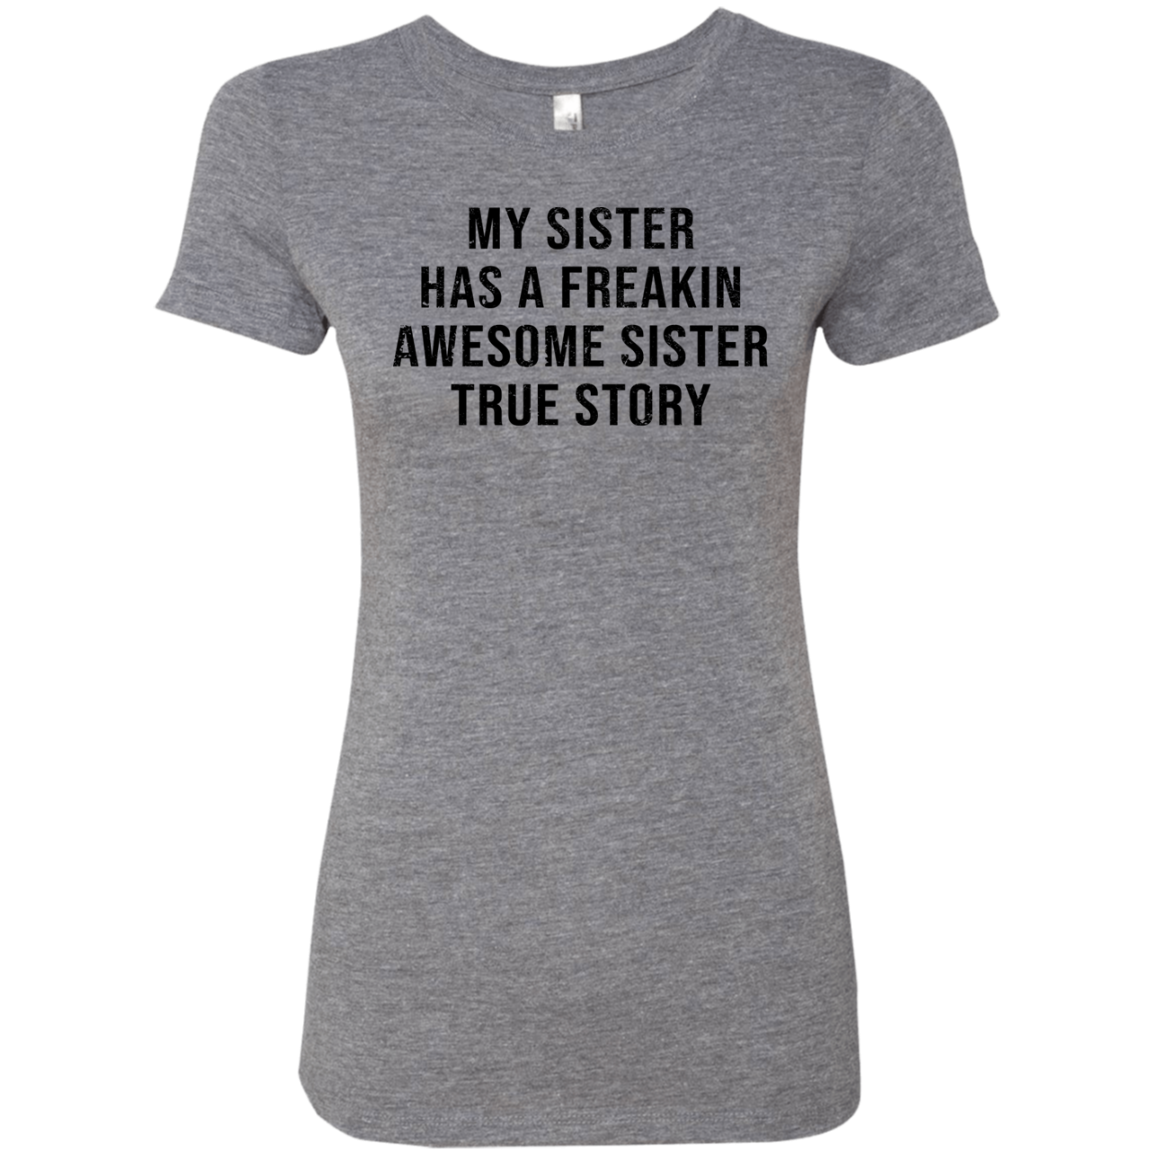 My Sister Has A Freakin Awesome Sister True Story Women's Classic Tee